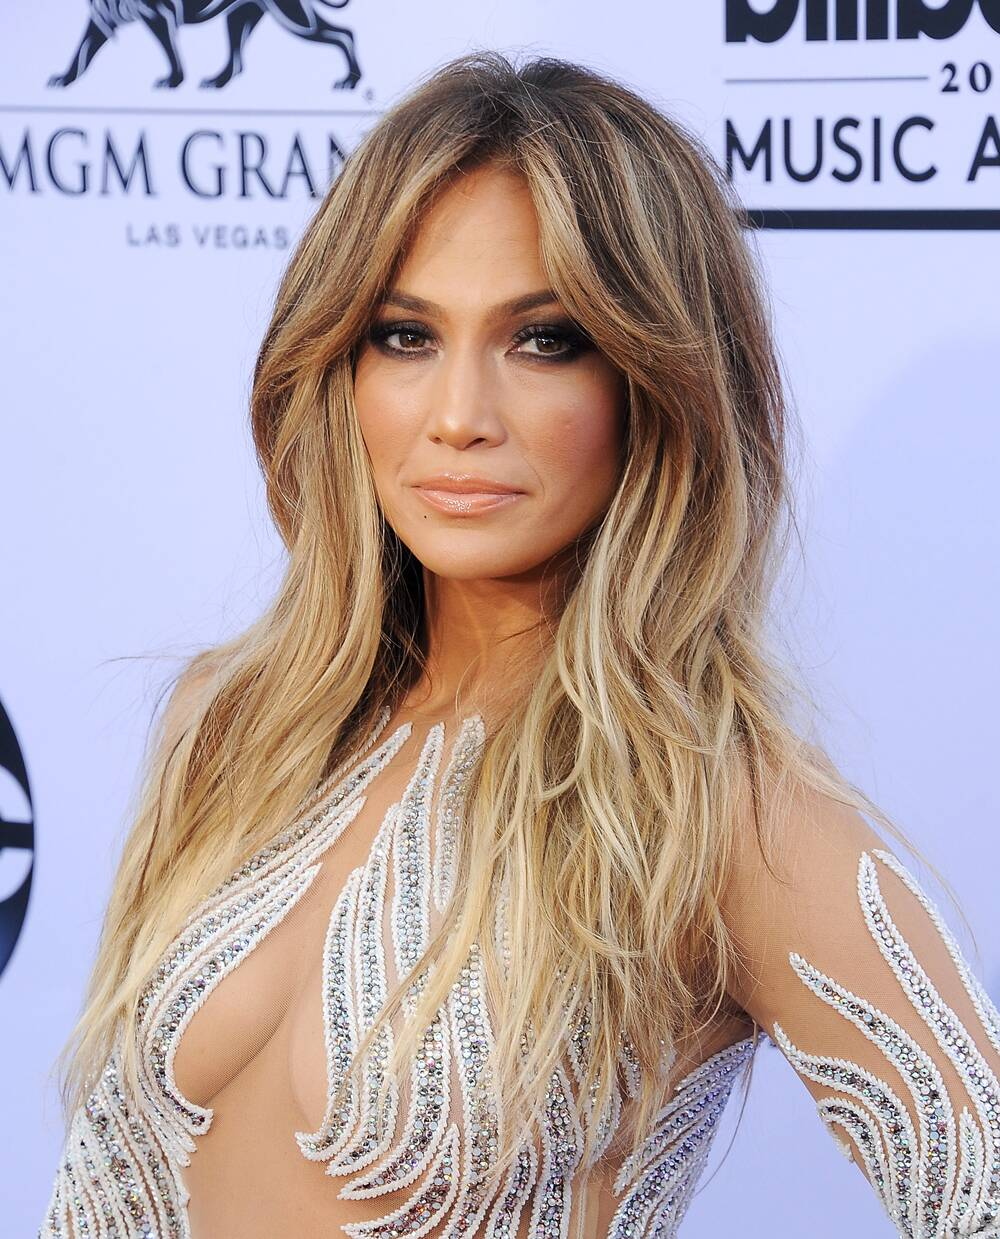 Bangs Layered hair Hairstyle Long hair - jennifer lopez png download ...